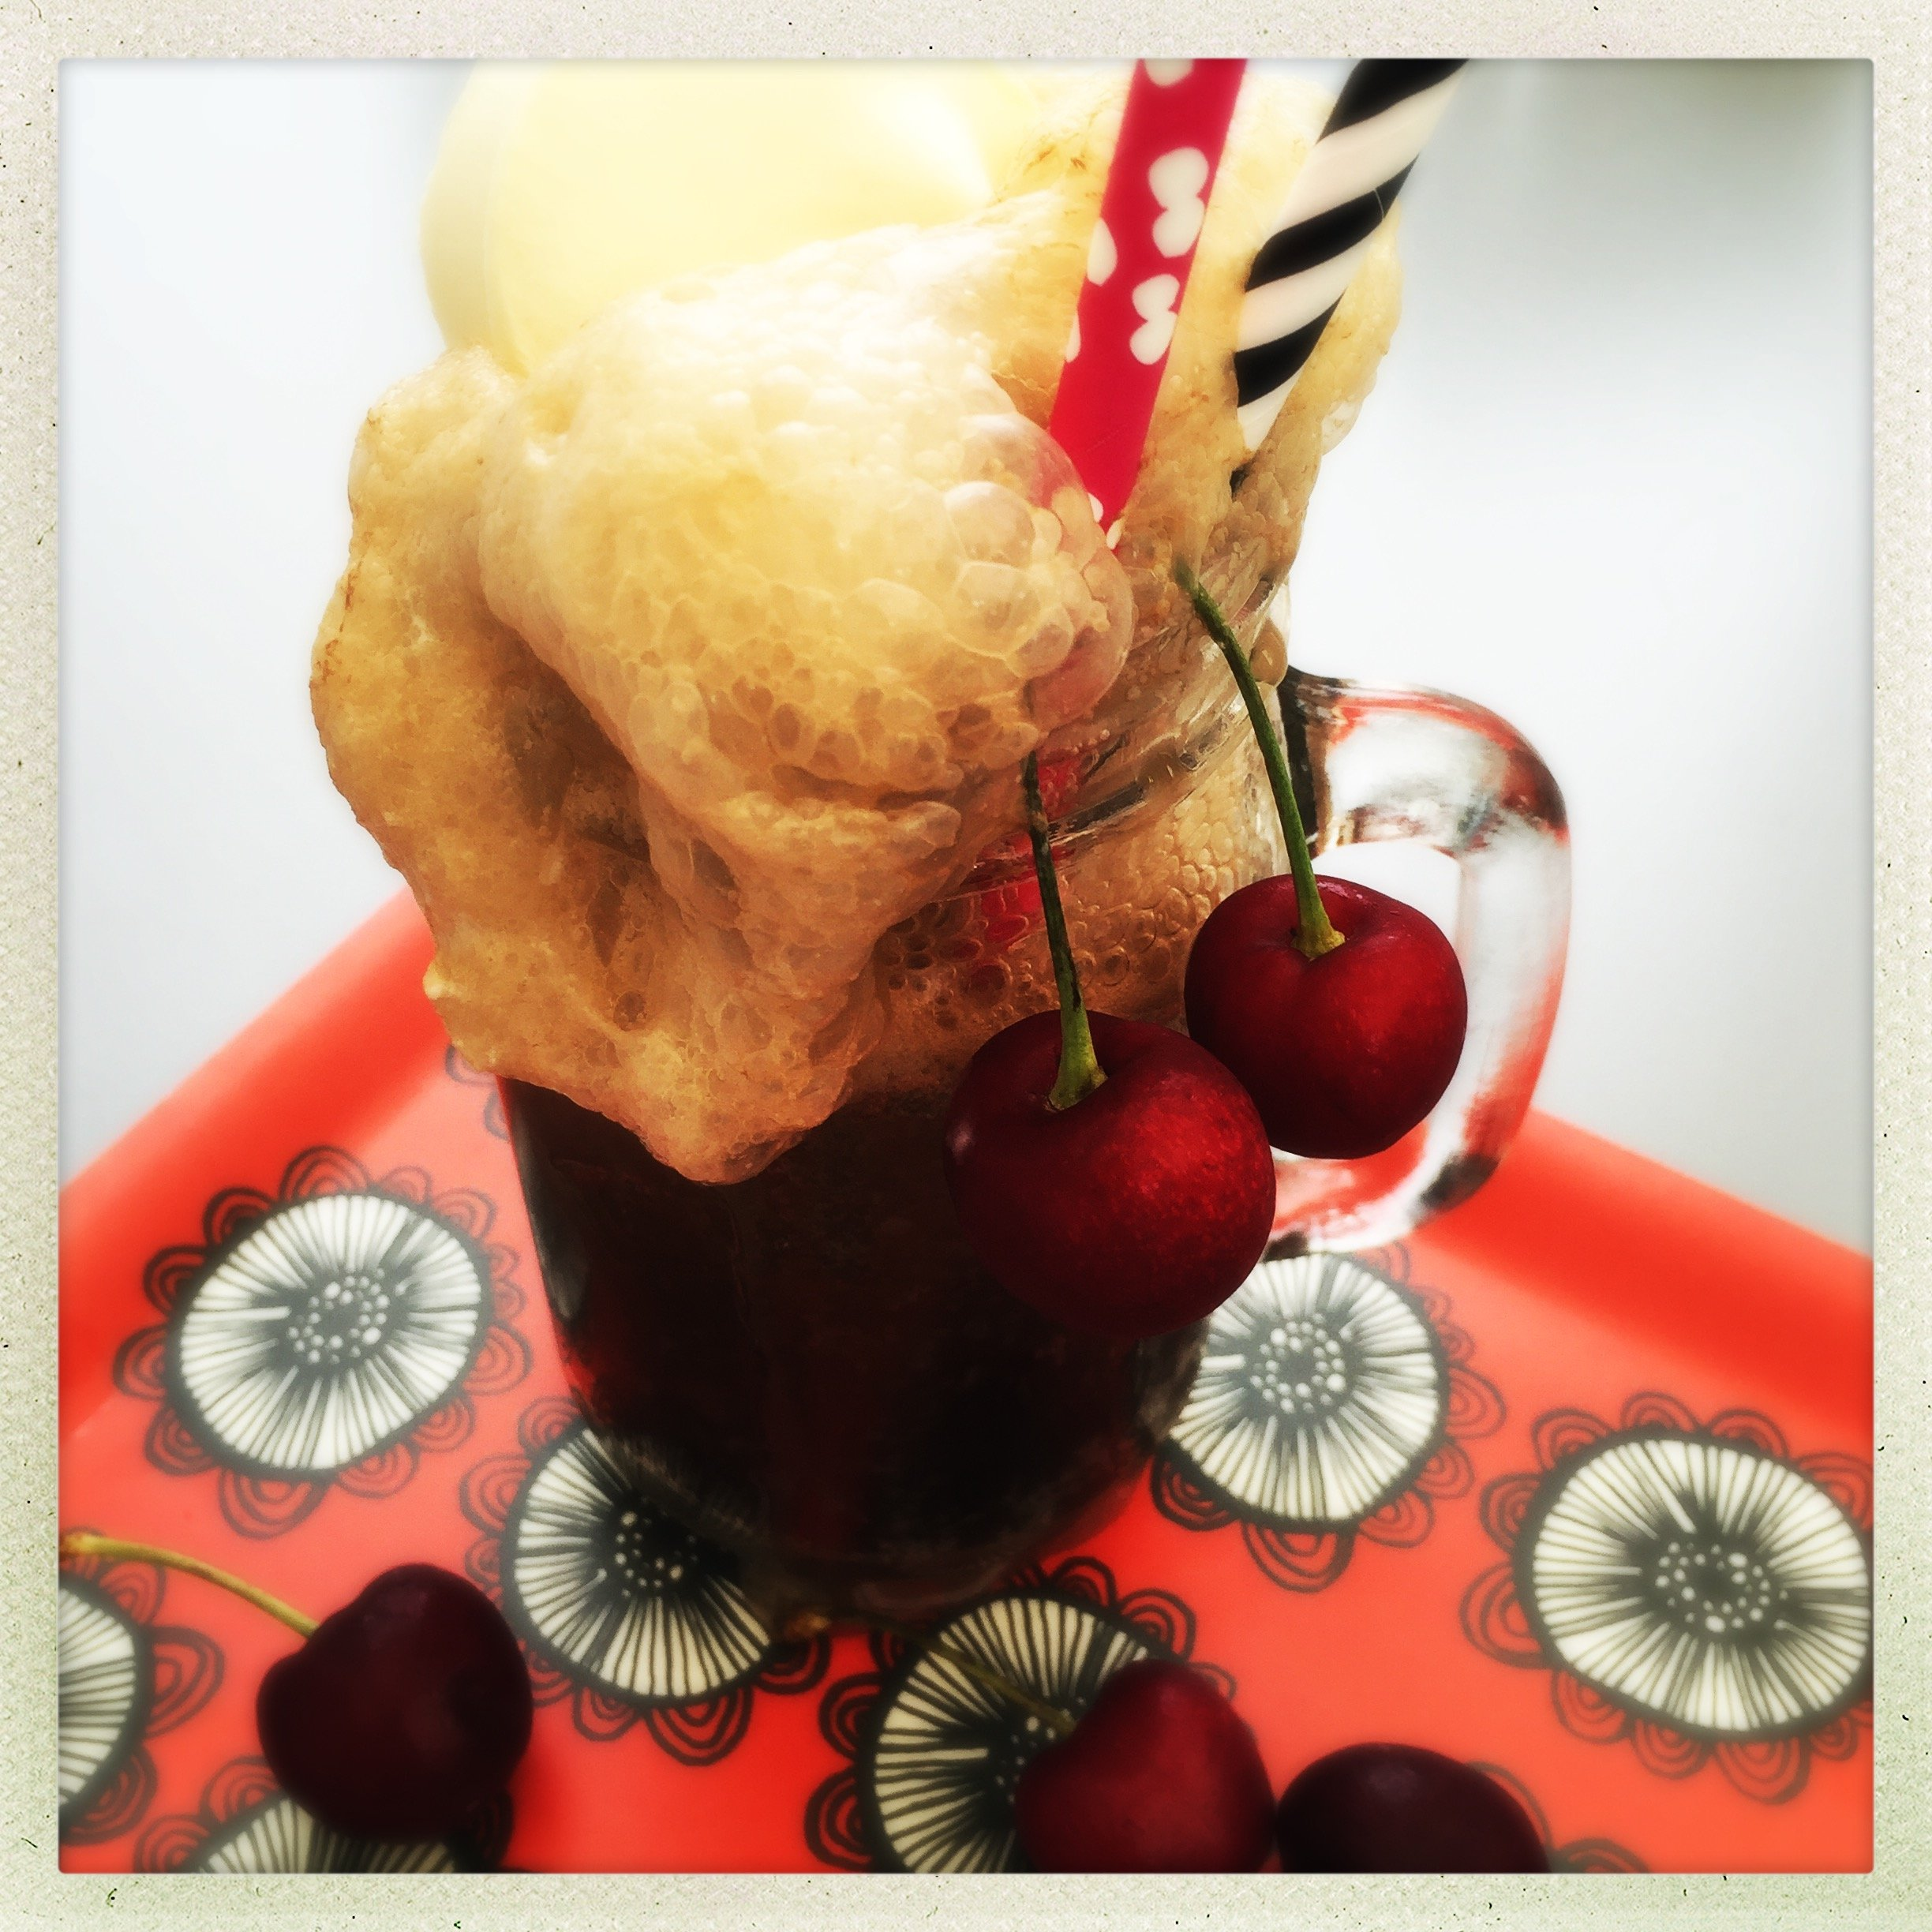 cherry coke float in a kilner jar mug with red and white spotty paper straw, black and white striped paper straw, cherries hanging from the glass - stood on red and white wooden tray